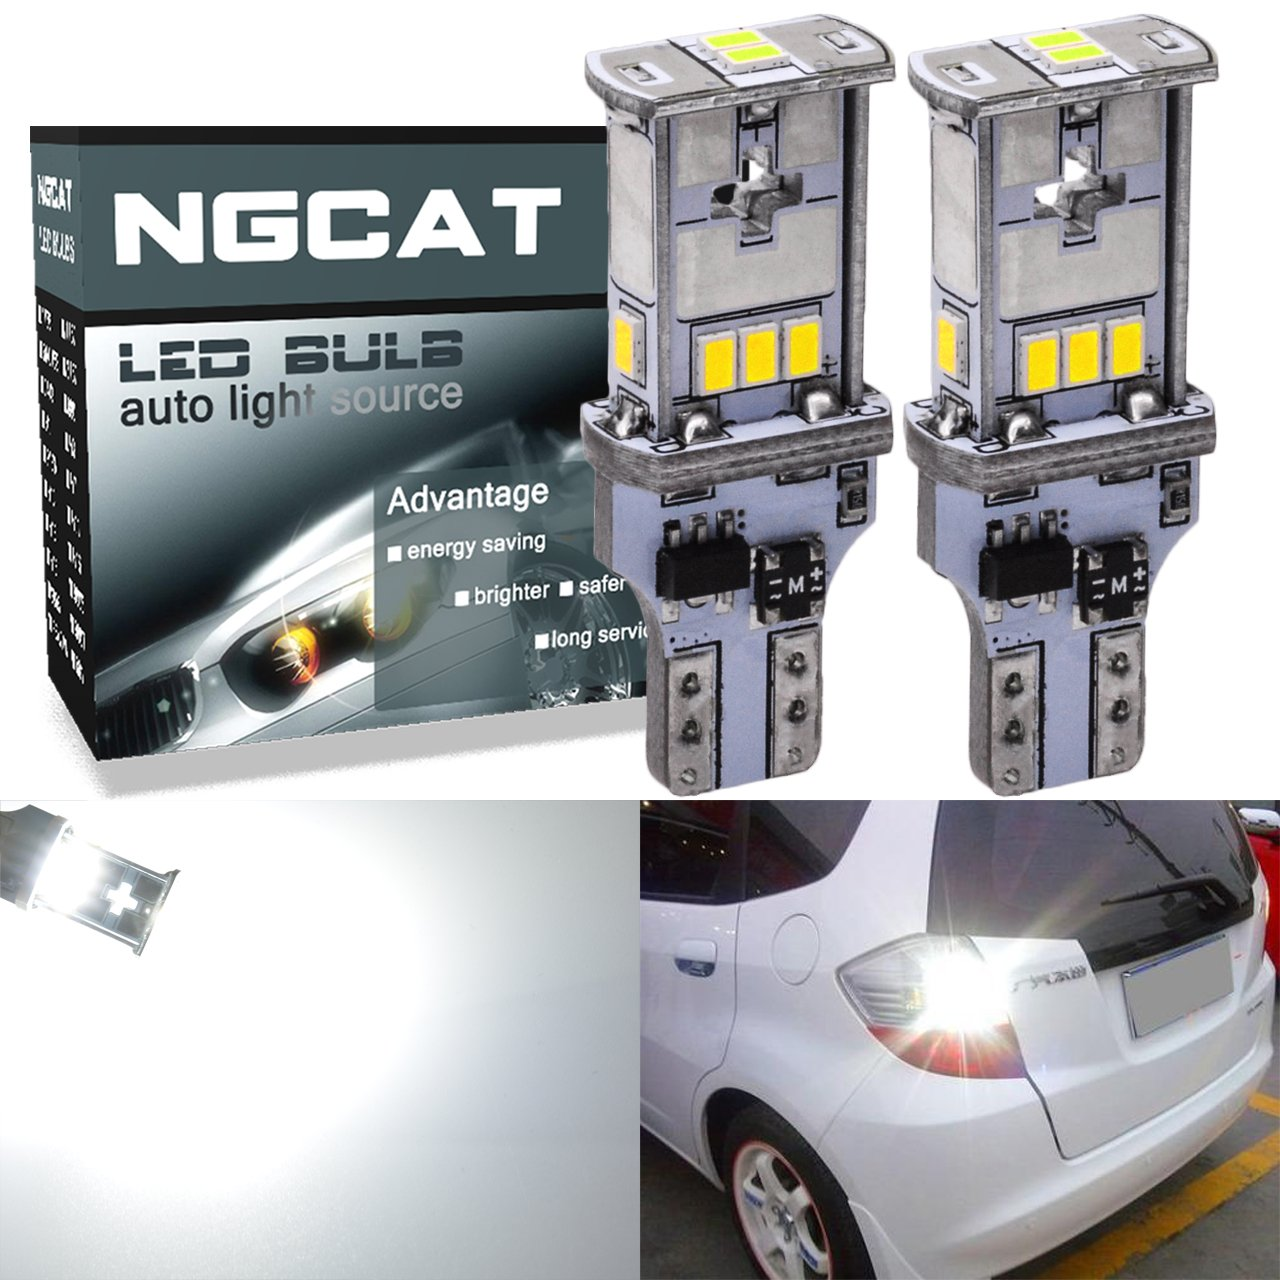 NGCAT 1800 Lumens 10 SMD 3020 CREE T15 921 912 T10 W16W LED Bulbs Used for Automobile Exterior Reverse Light, DC 10-16V Xenon White(2-Pack)